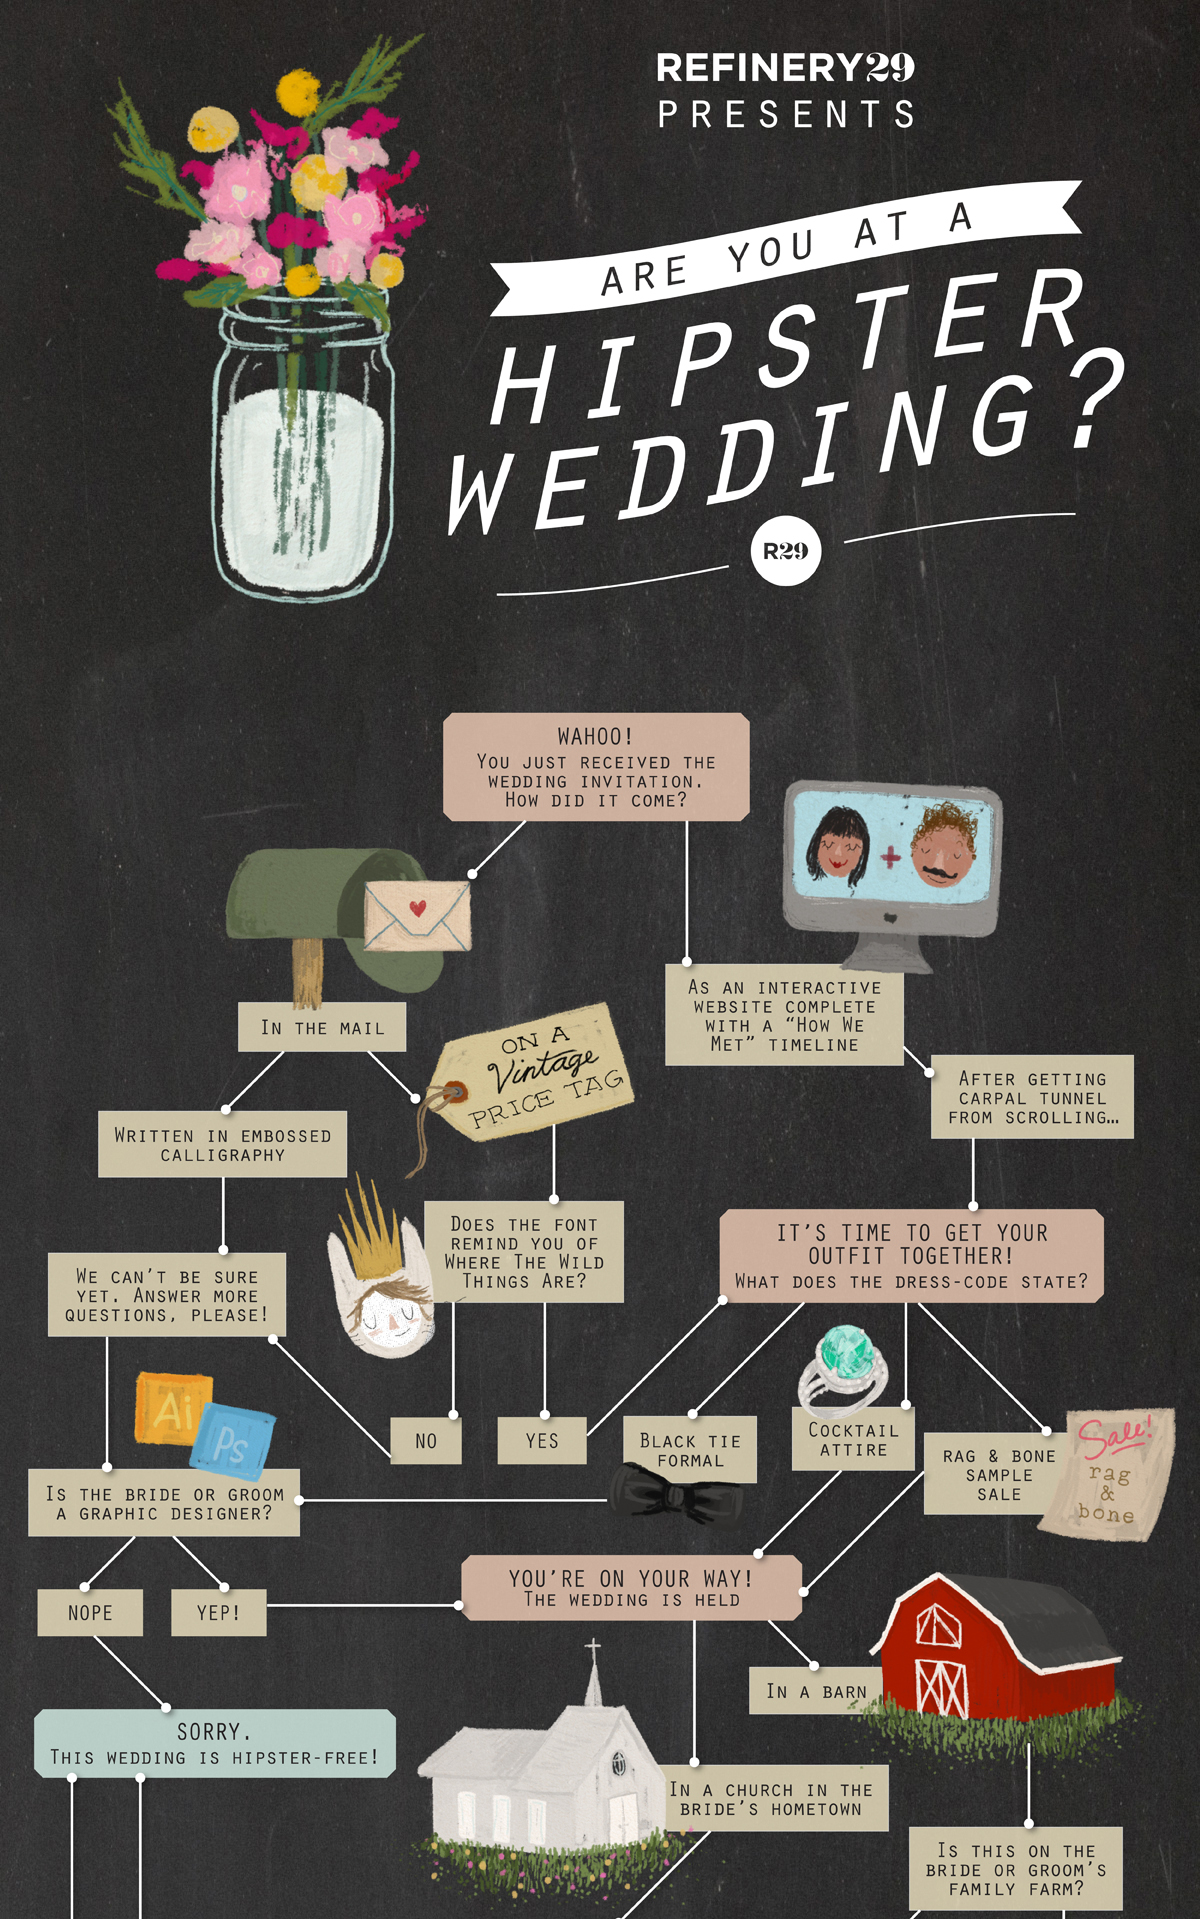 Hipster Wedding: How To Tell If You're At One | HuffPost